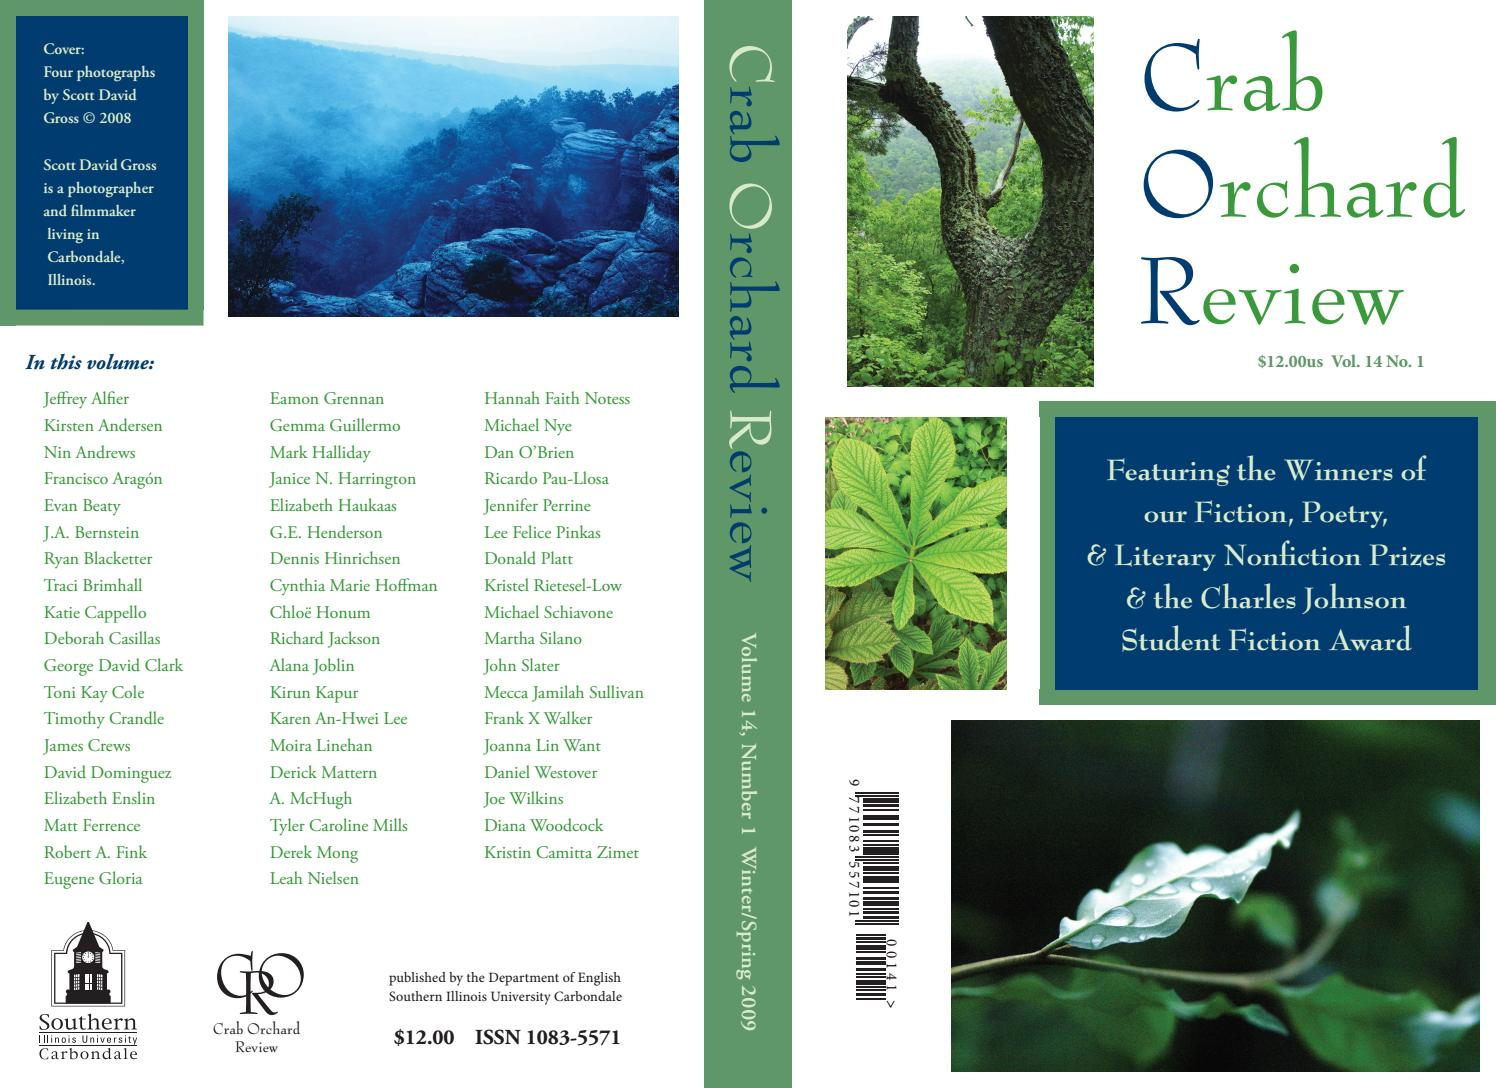 17040625e8bb Crab Orchard Review Vol 14 No 1 W S 2009 by Crab Orchard Review - issuu